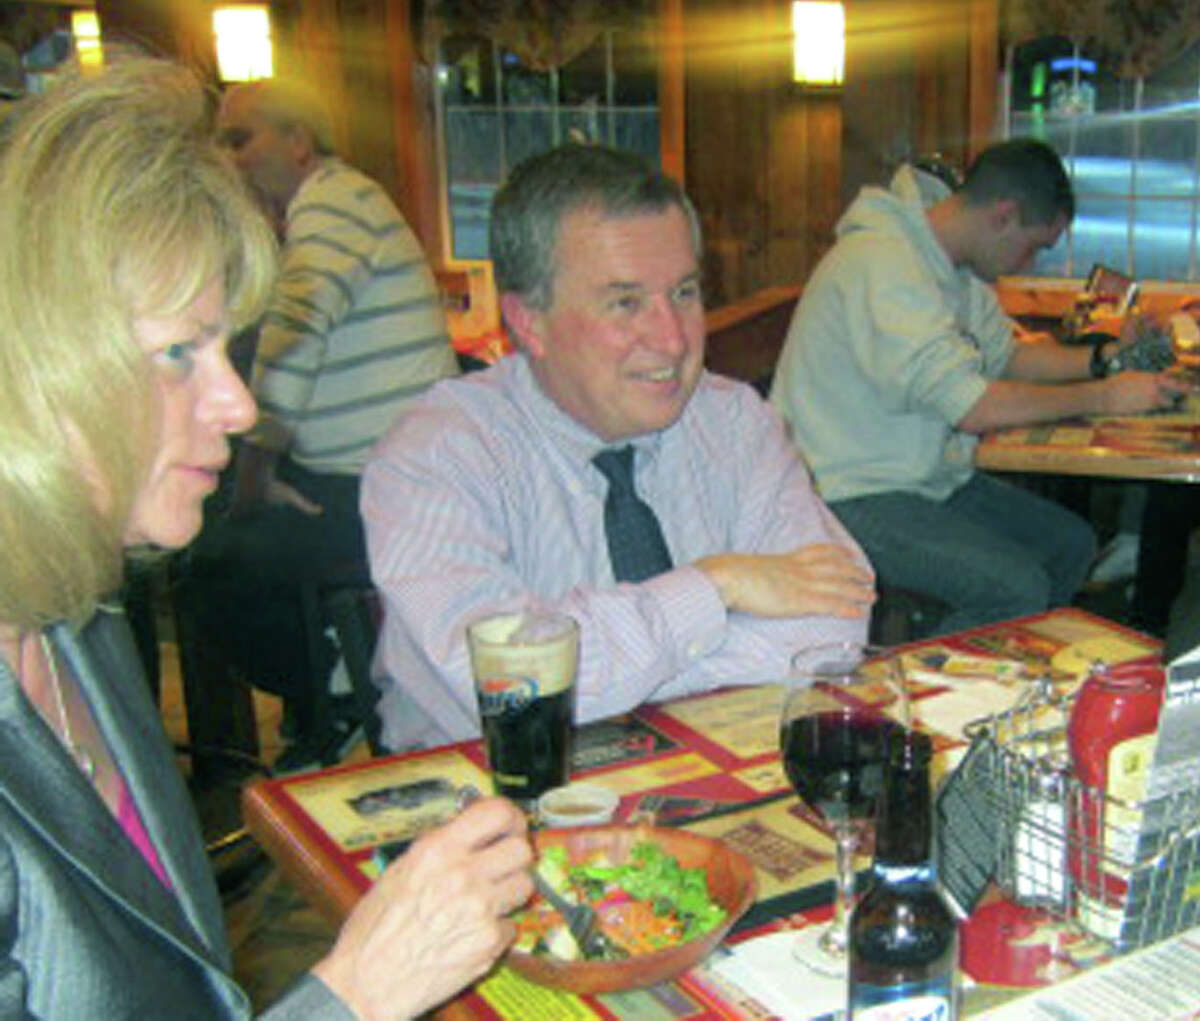 Kevin Dumas, a charter board member and longtime treasurer for MVP-SOS, enjoys dinner with his wife, Diana, during The Cookhouse's Feb. 27, 2013 fundraiser for the local charitable organization.